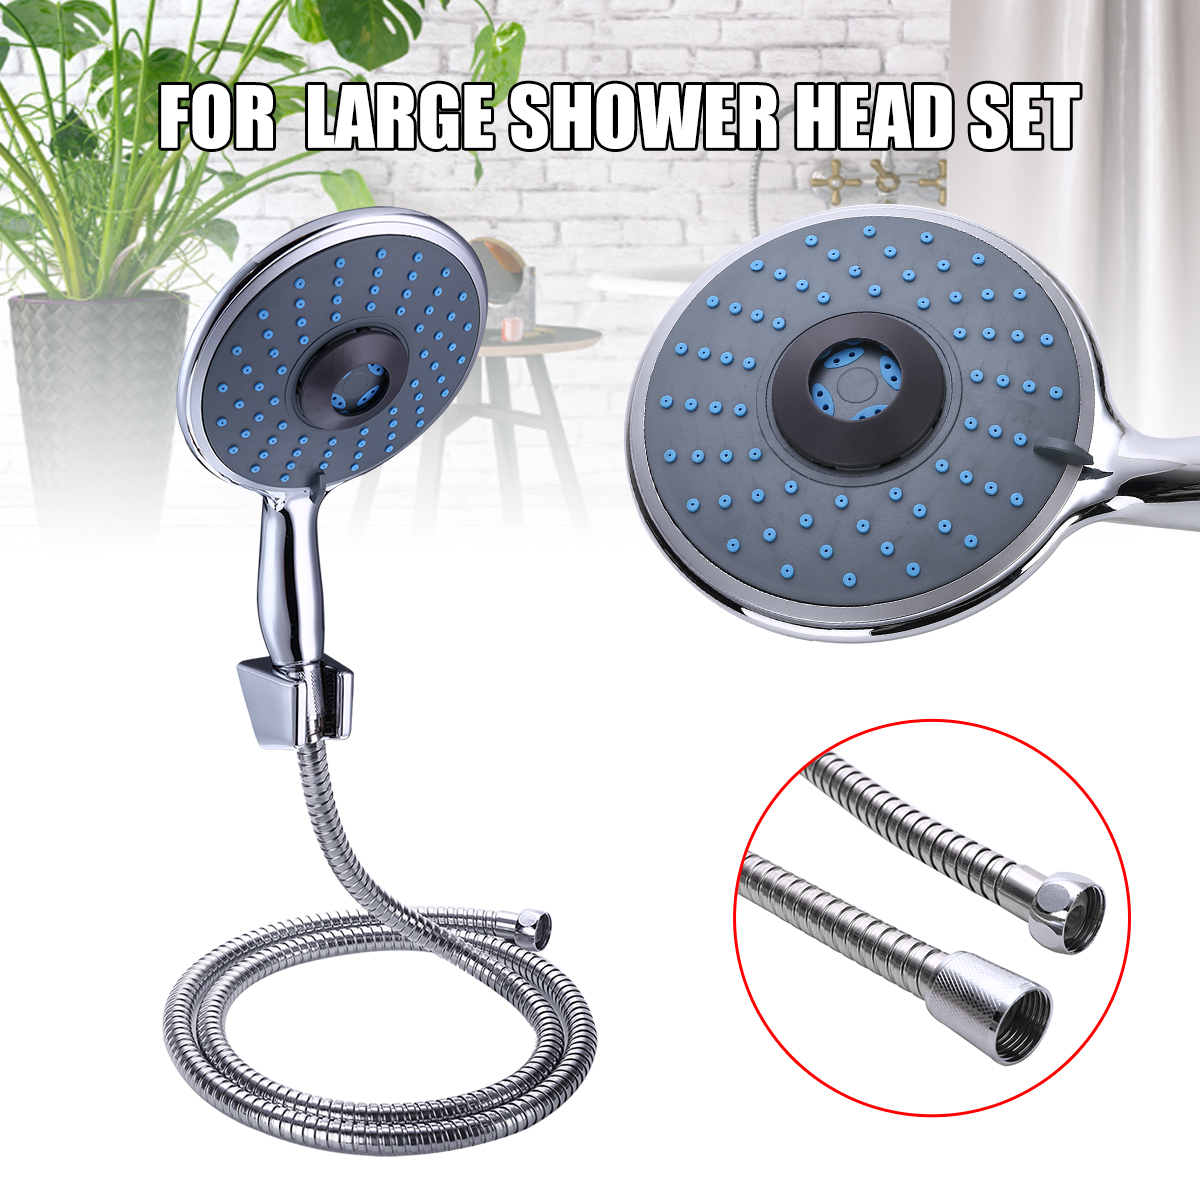 Multifunction Shower Head Set 5 Mode Chrome Handheld Large Shower Head Stainless Steel Shower Hose Holder Bathroom Accessories